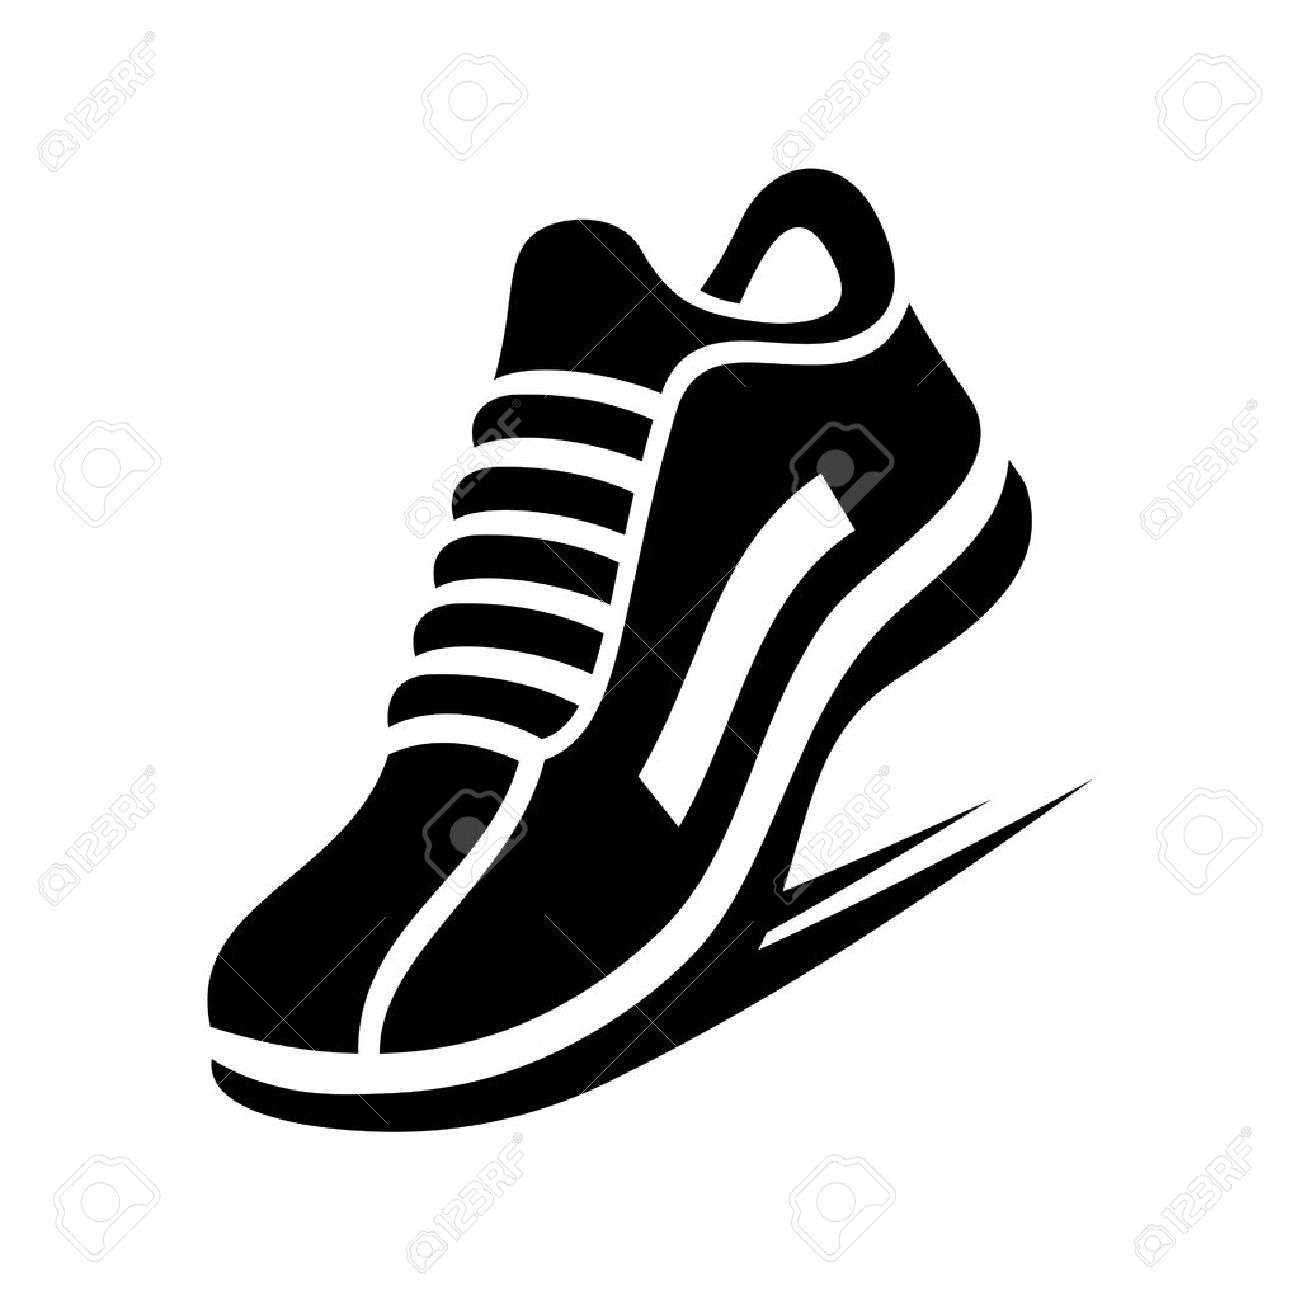 running shoe icon on white background royalty free cliparts vectors rh 123rf com clipart athletic shoes clip art pictures of running shoes